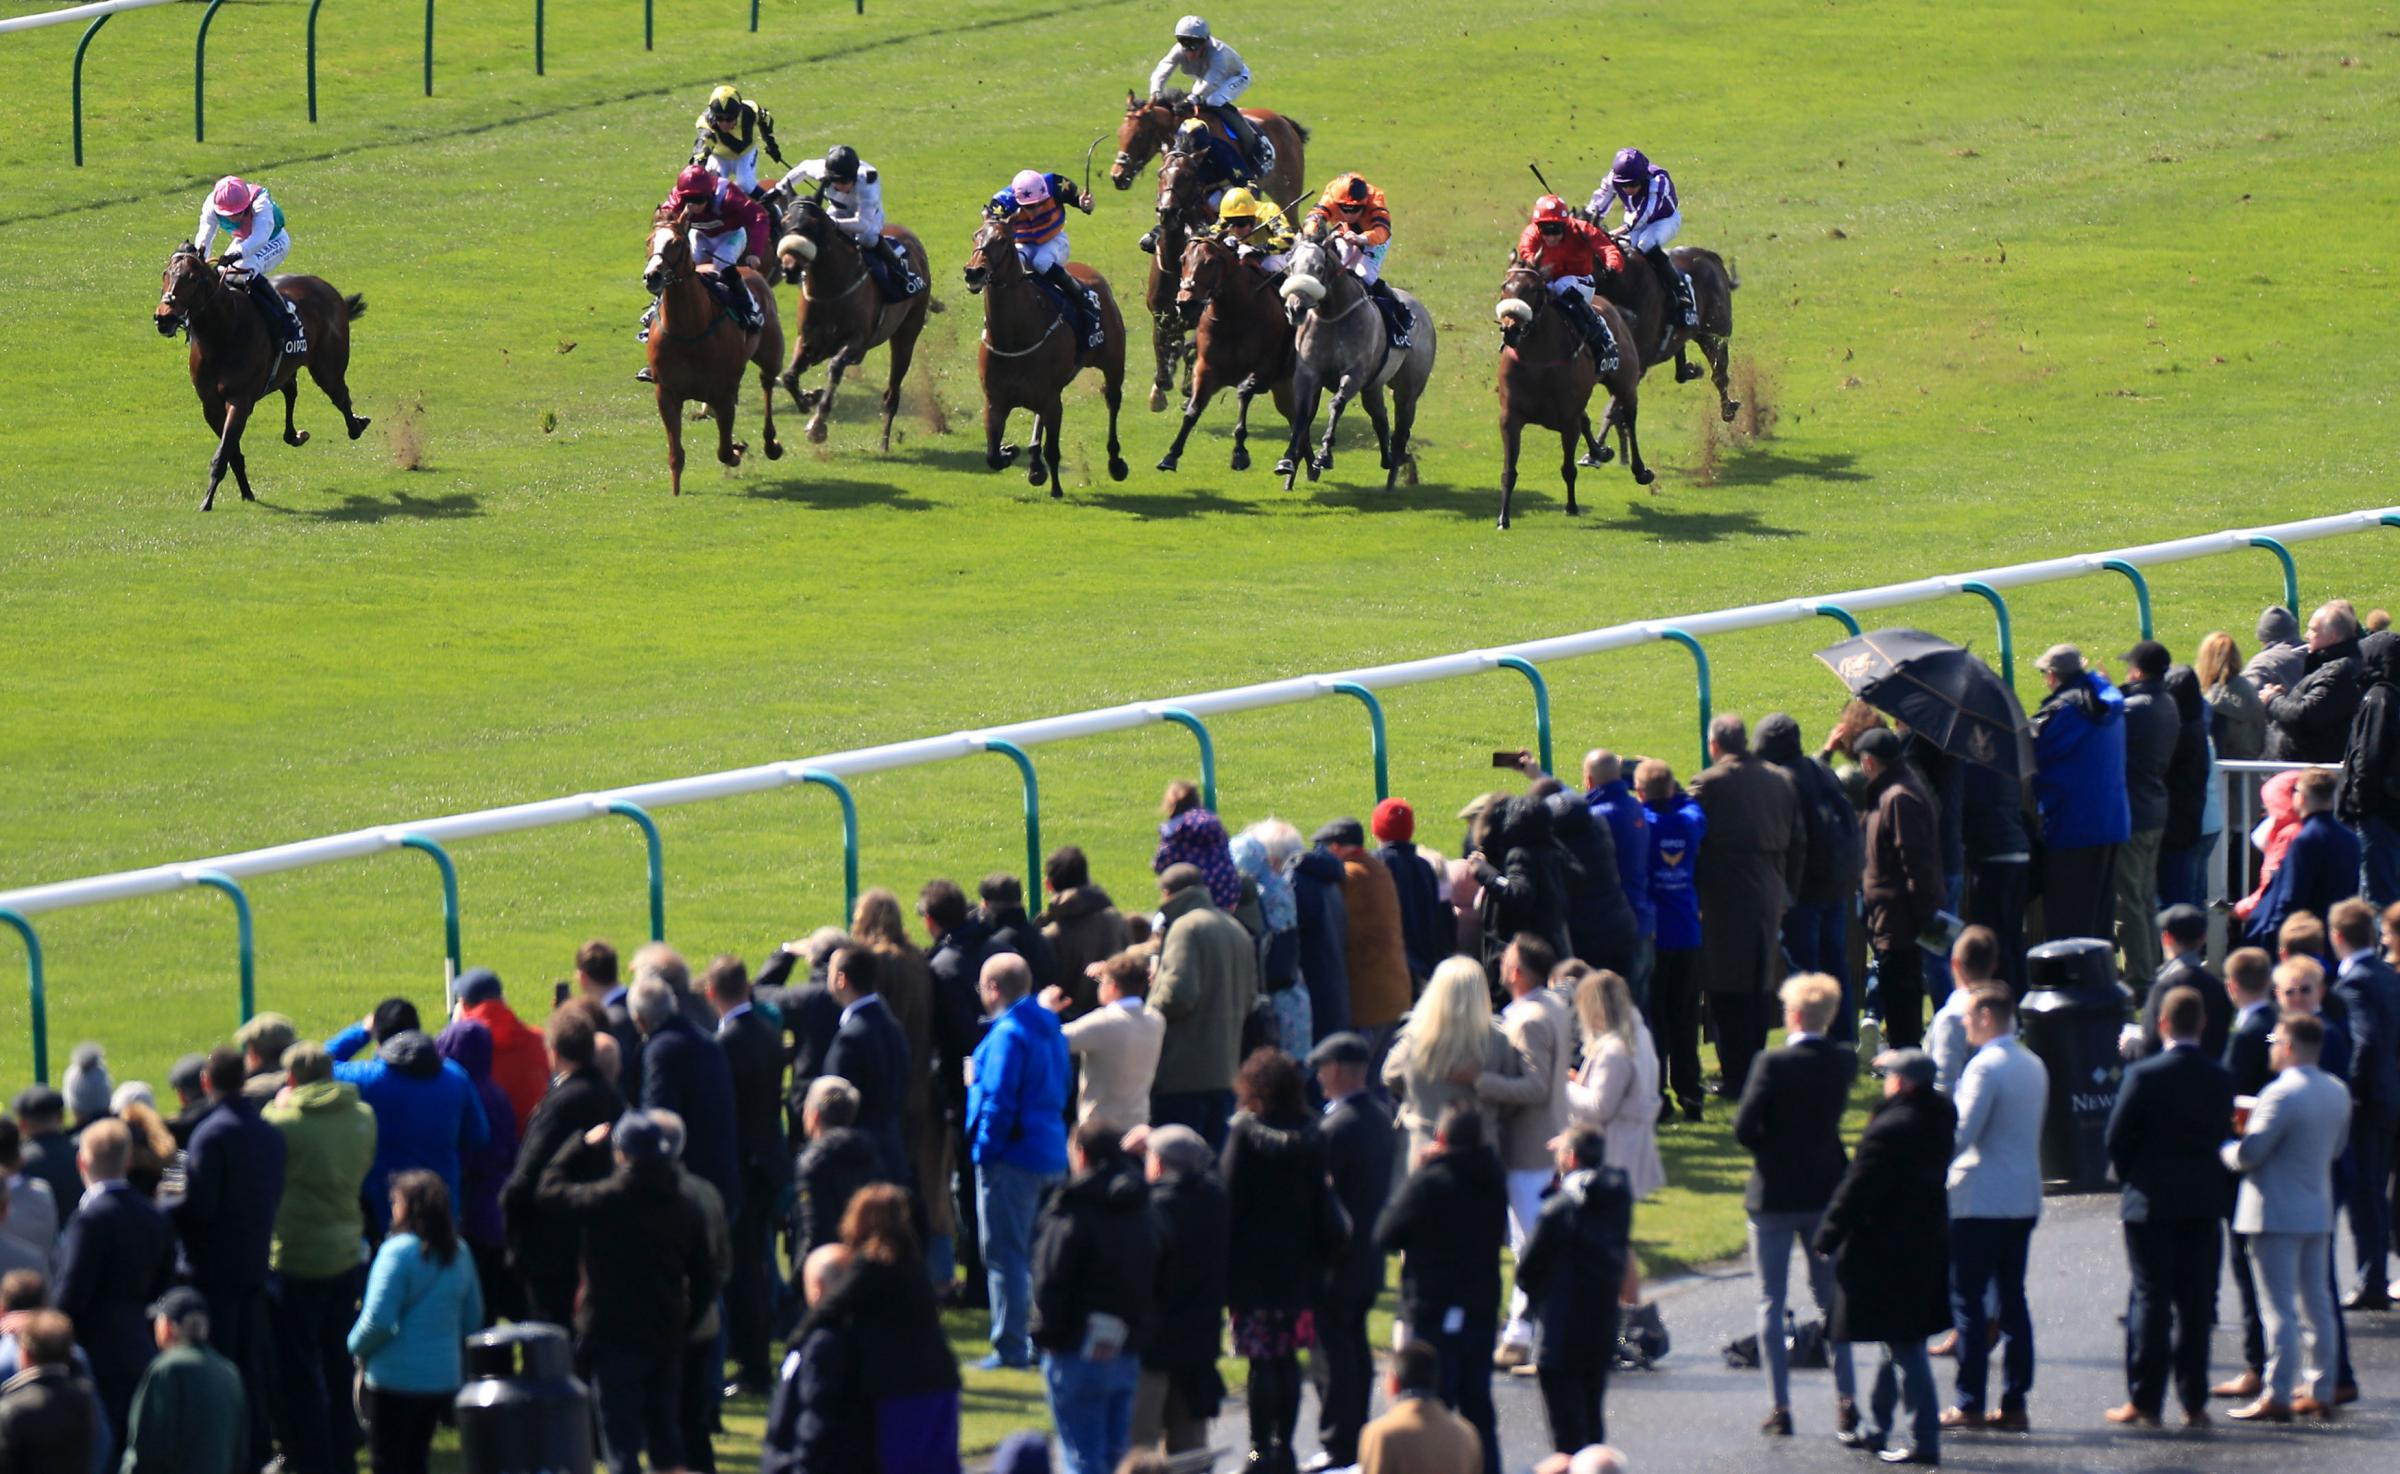 Racegoers watch the action as Mabs Cross ridden by jockey Paul Mulrennan (right) goes on to win the Zoustar Palace House Stakes ahead of Equilateral ridden by Oisin Murphy (left) at Newmarket last weekend. Picture: Mike Egerton/PA Wire